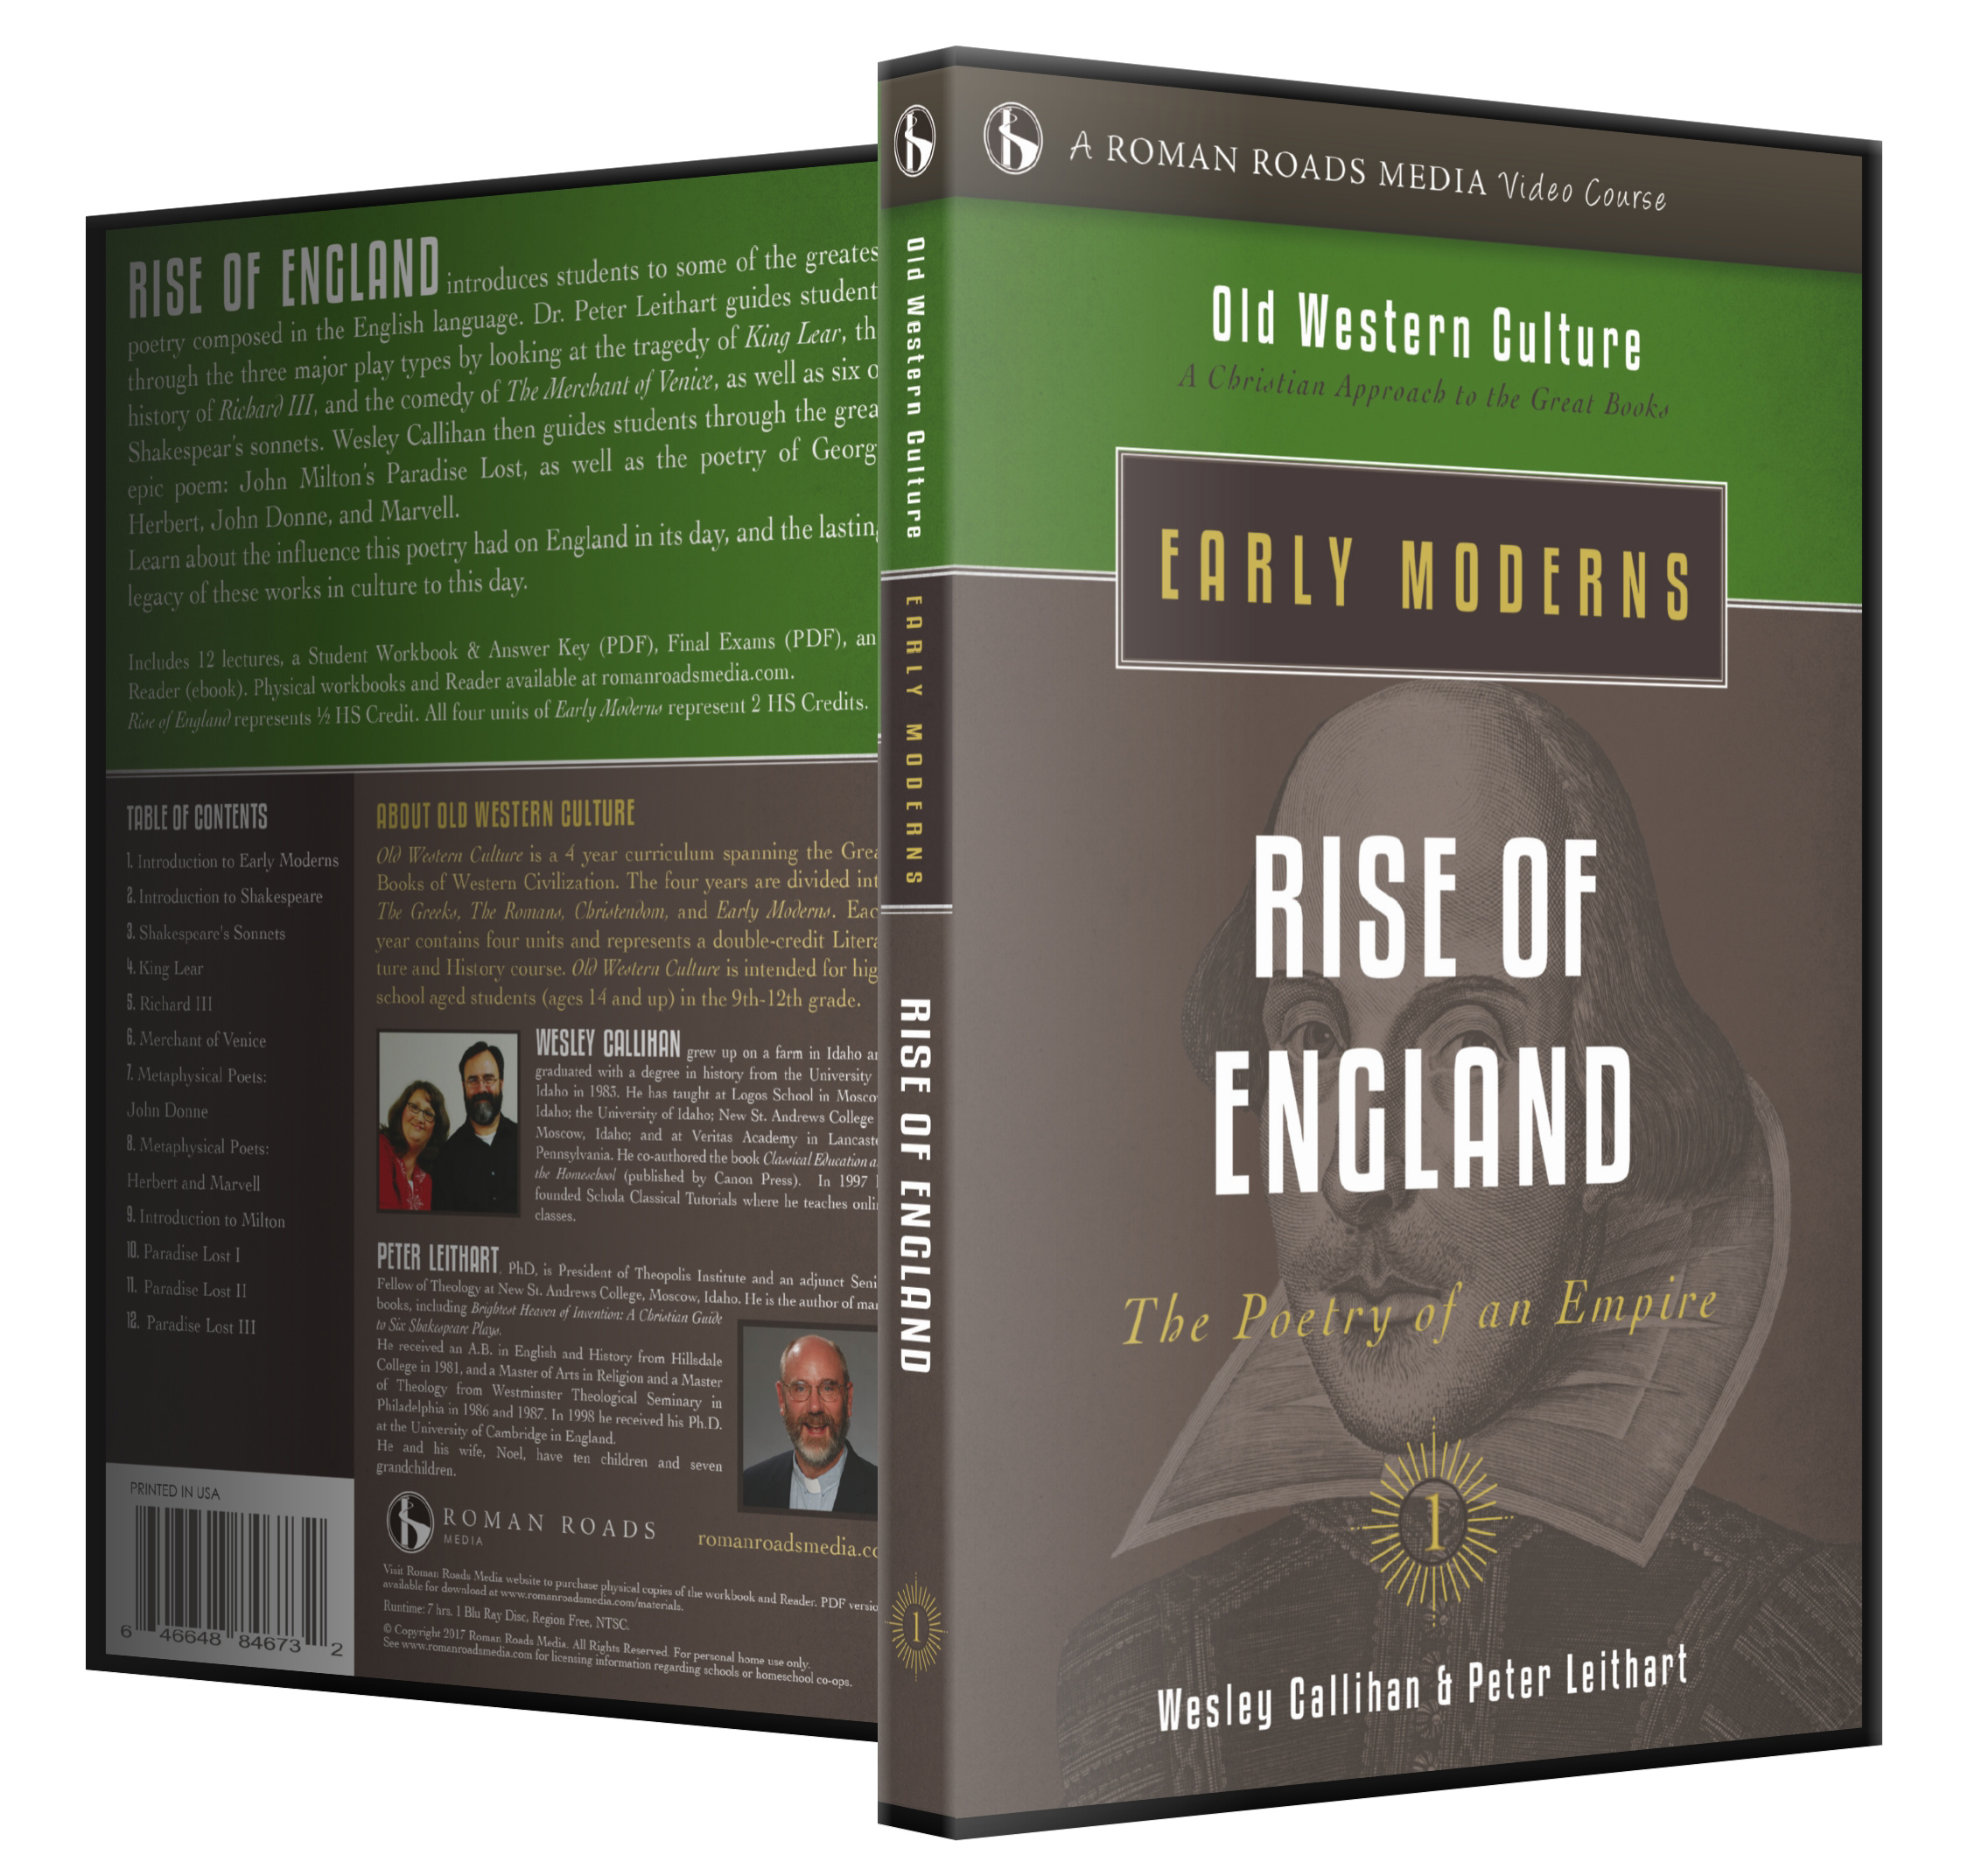 Early Moderns: Rise of England